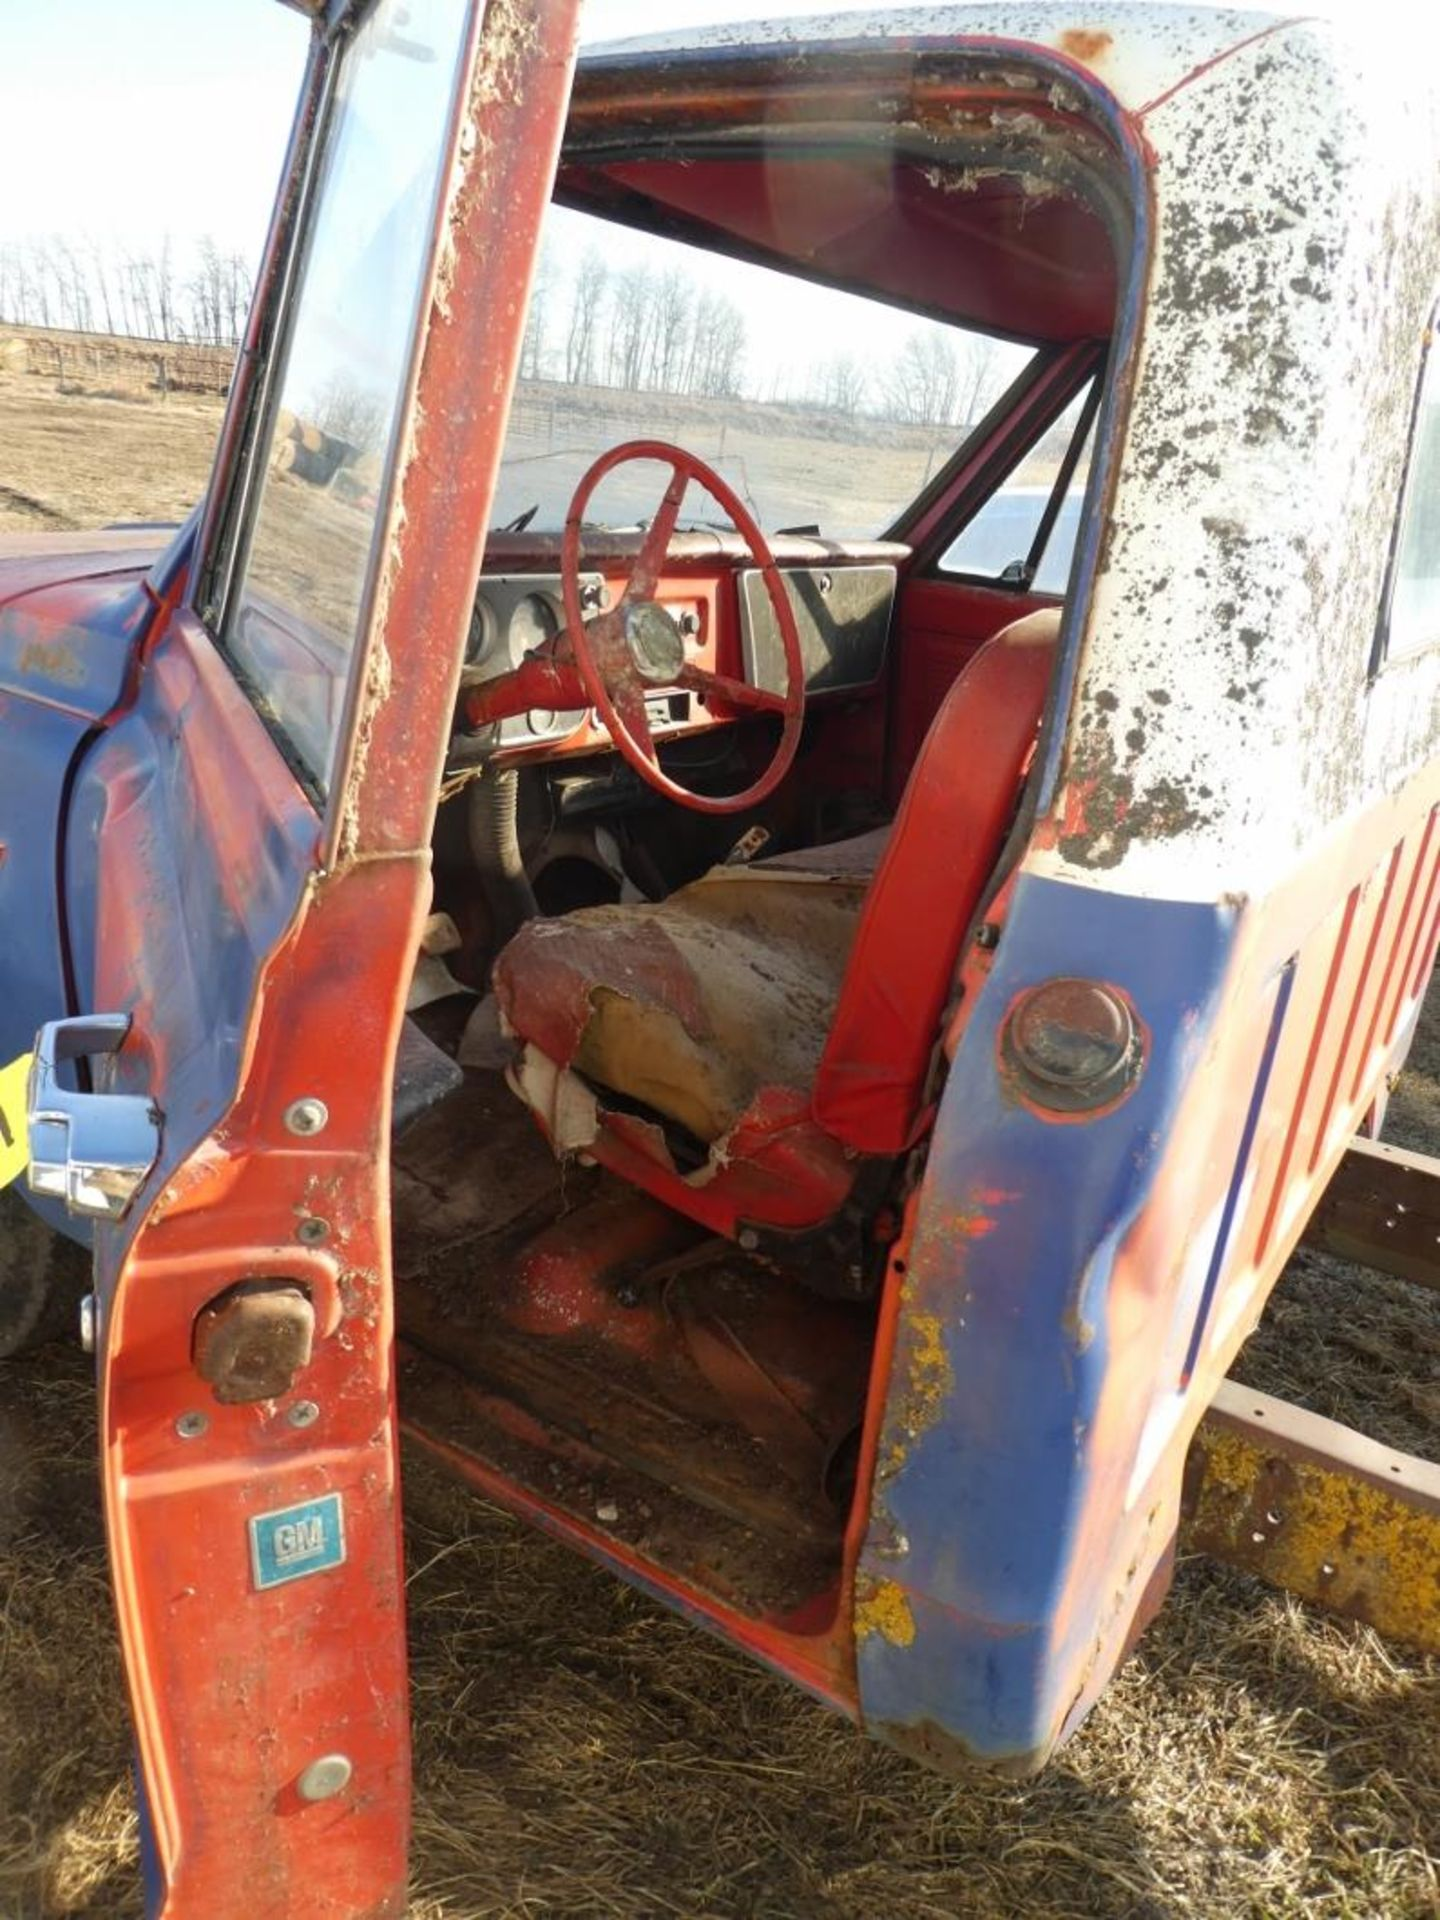 1970'S CHEV 30 CAB & CHASSIS - REG CAB, DUALS, NO ENGINE OR TRANSMISSION S/N CE3371125498 - Image 6 of 9